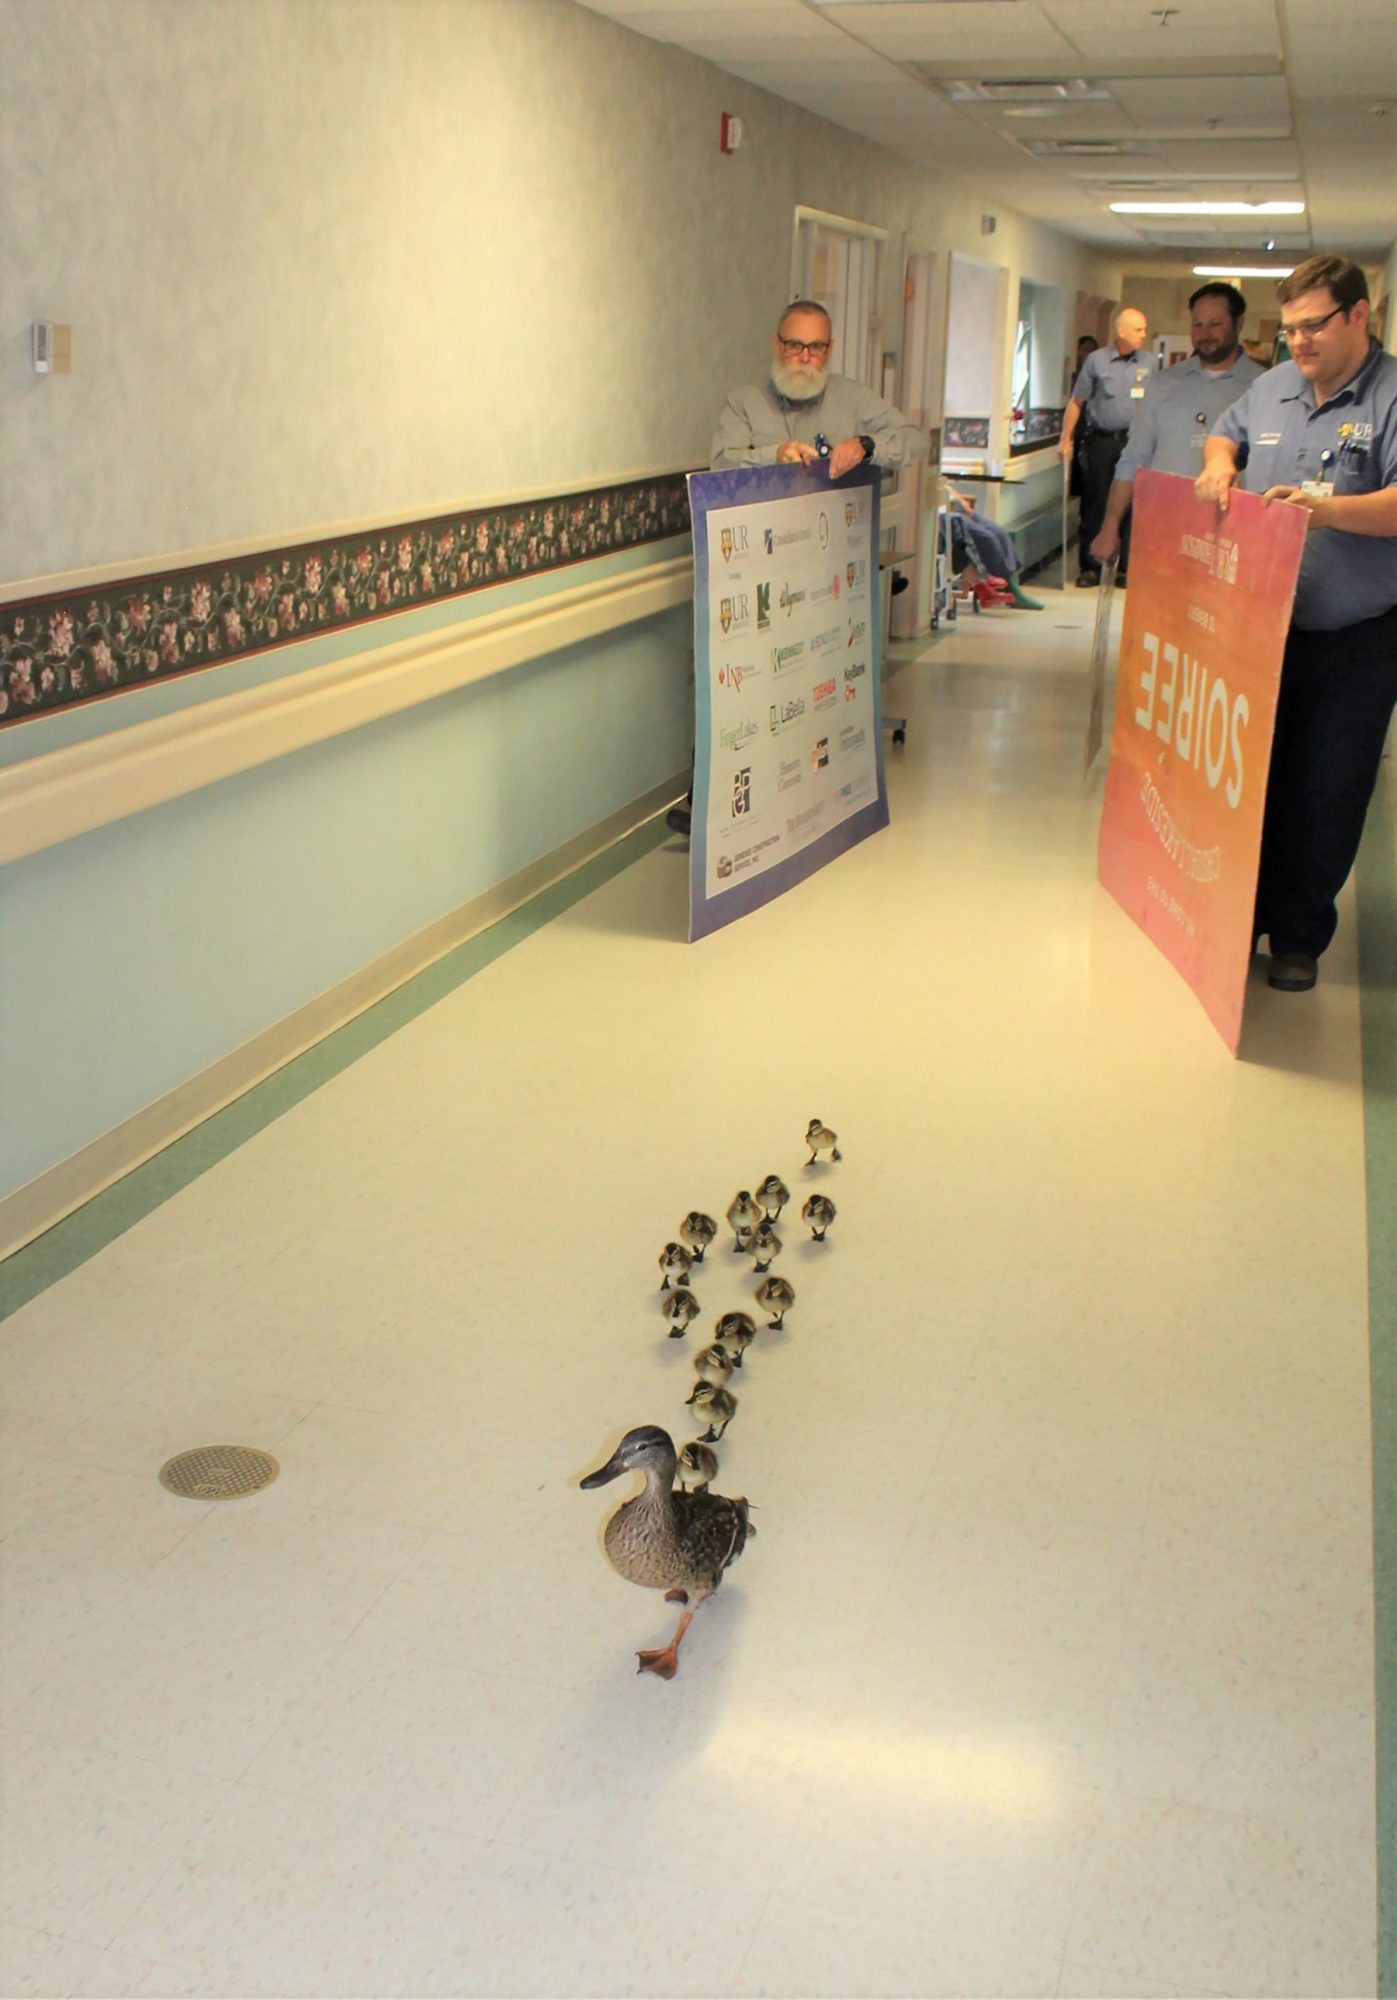 Mother Duck Parades Her Babies Through a New York Hospital Which She Does Once a Year, Every Year